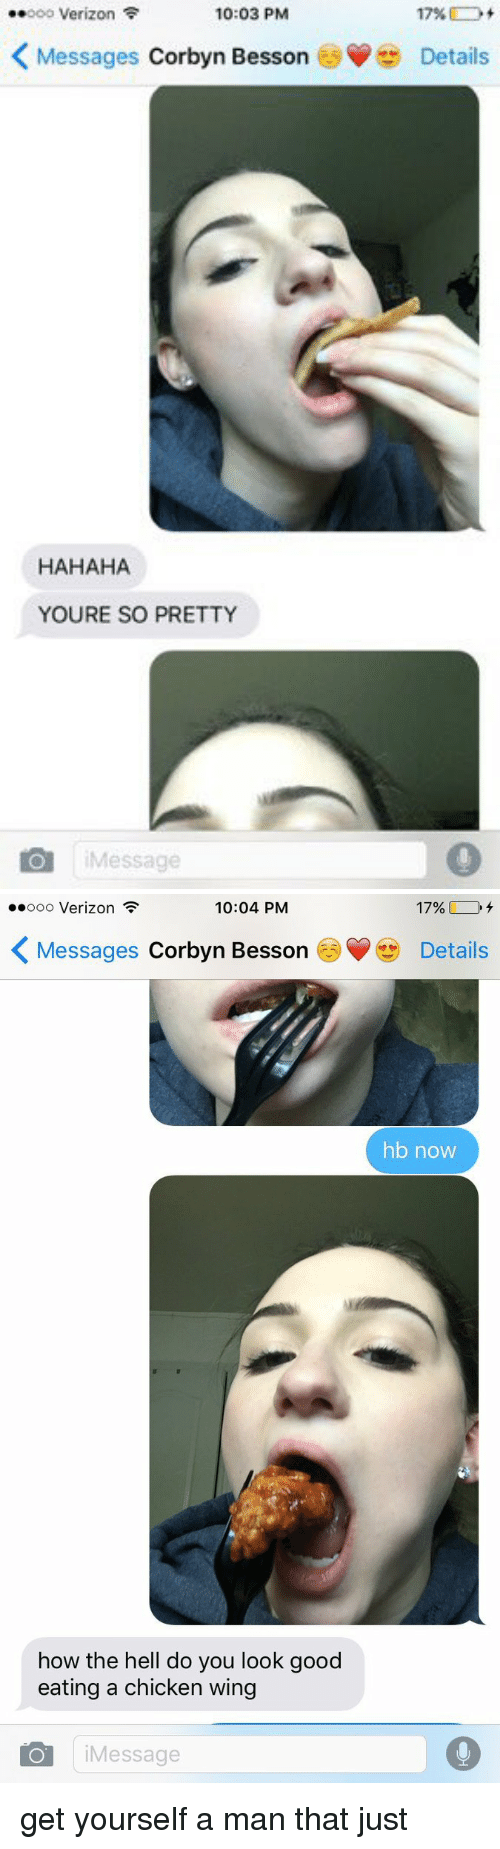 Your So Pretty: 10:03 PM  Verizon F  17%  K Messages  Corbyn Besson Details  HAHAHA  YOURE SO PRETTY  O Message   10:04 PM  17%,  ..ooo Verizon  K Messages Corbyn Besson Details  hb now  how the hell do you look good  eating a chicken wing  O i Message get yourself a man that just